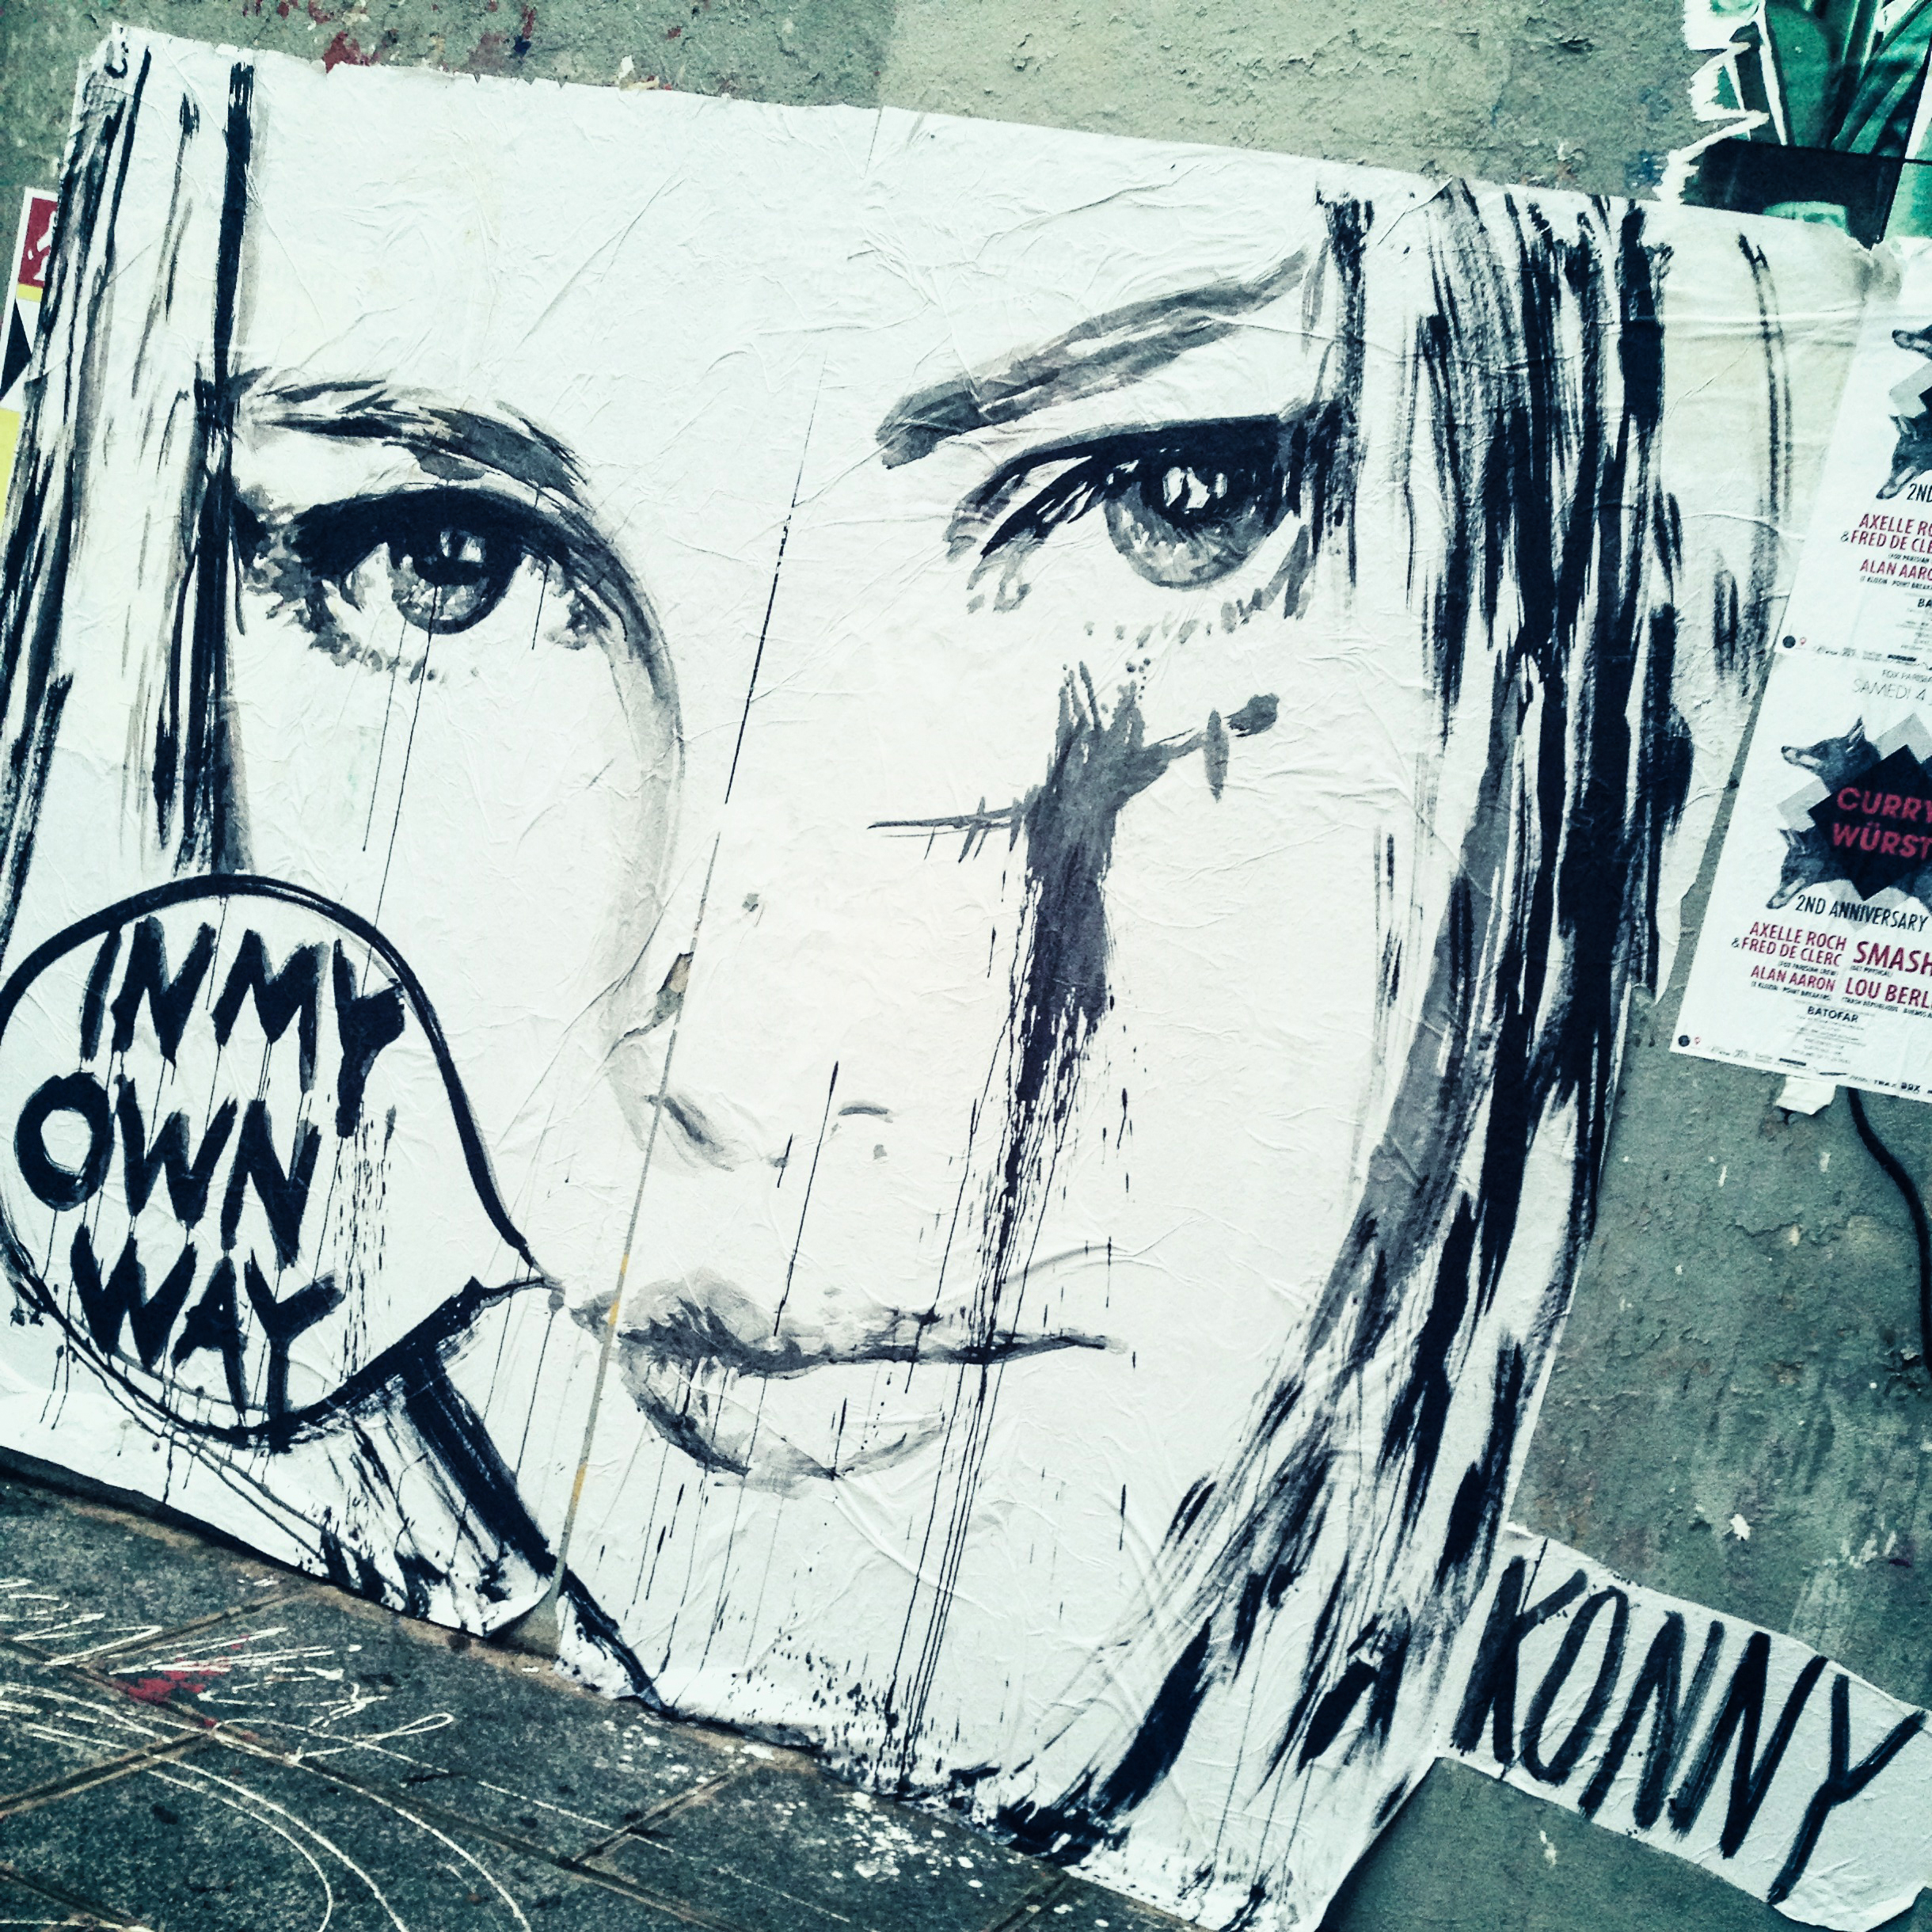 Own Konny Love